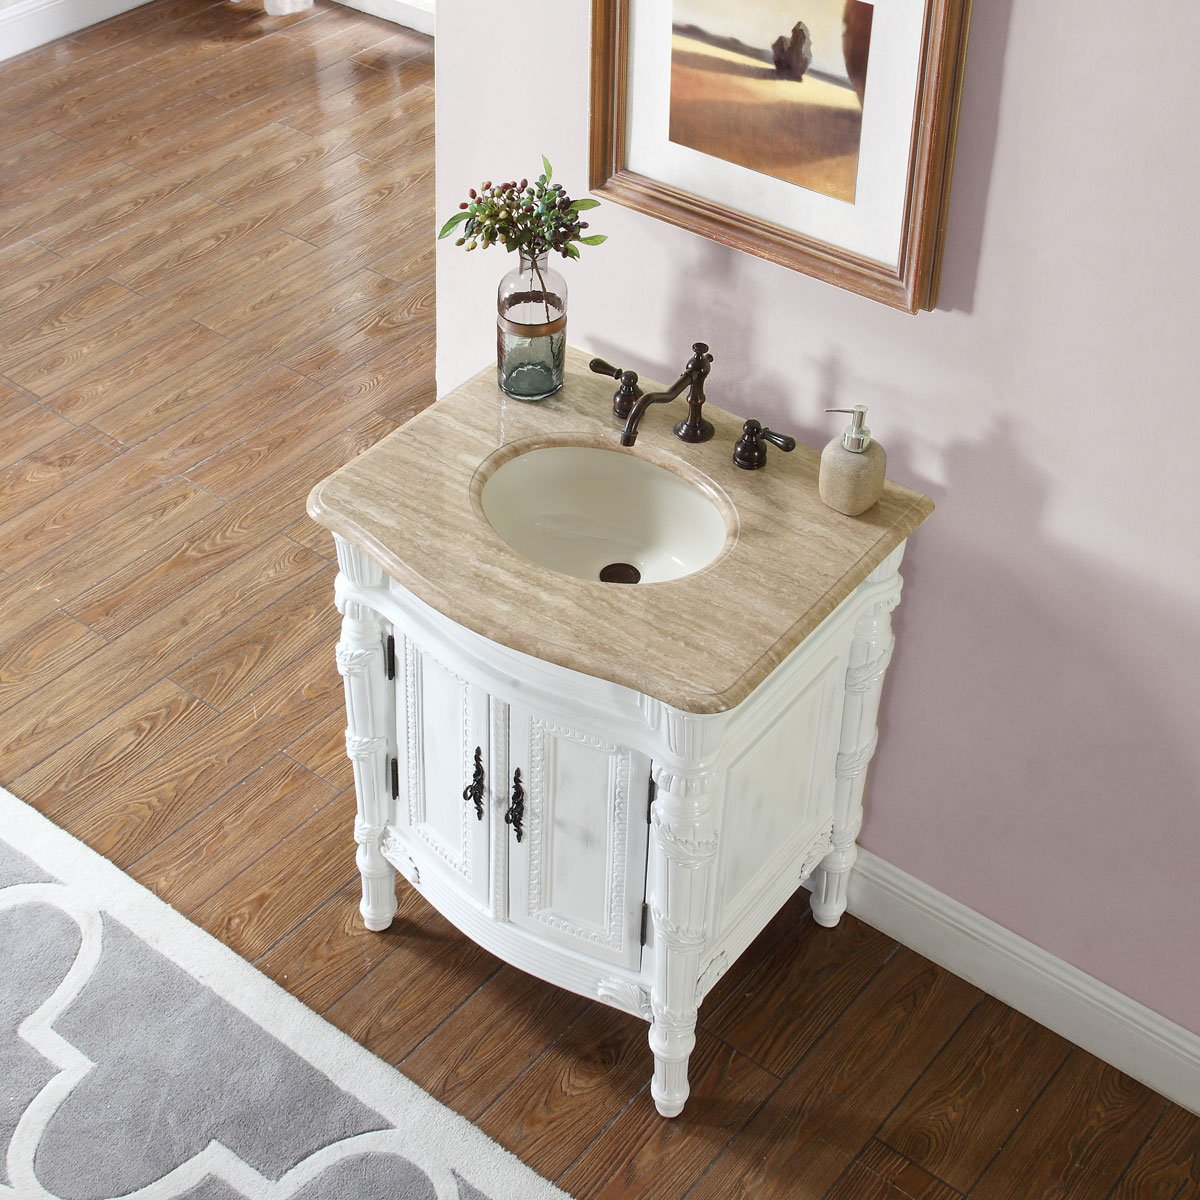 Silkroad Exclusive Travertine Top Single Sink Bathroom Vanity with White Oak Finish Cabinet, 26-Inch 2